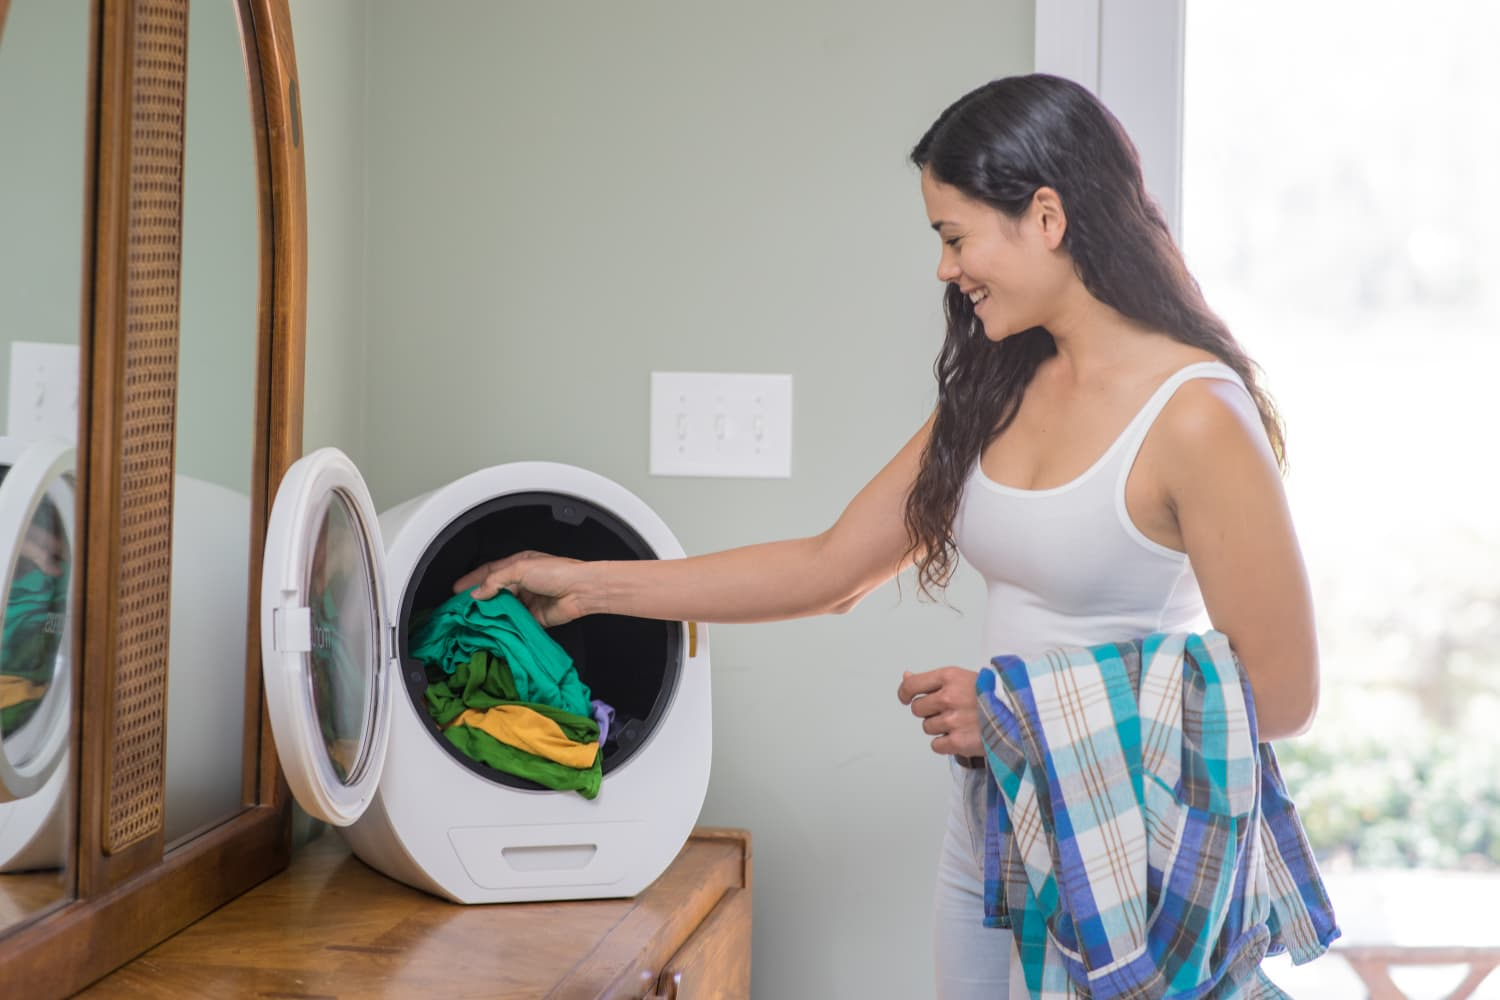 This Countertop Dryer Dries Your Laundry in Just 15 Minutes